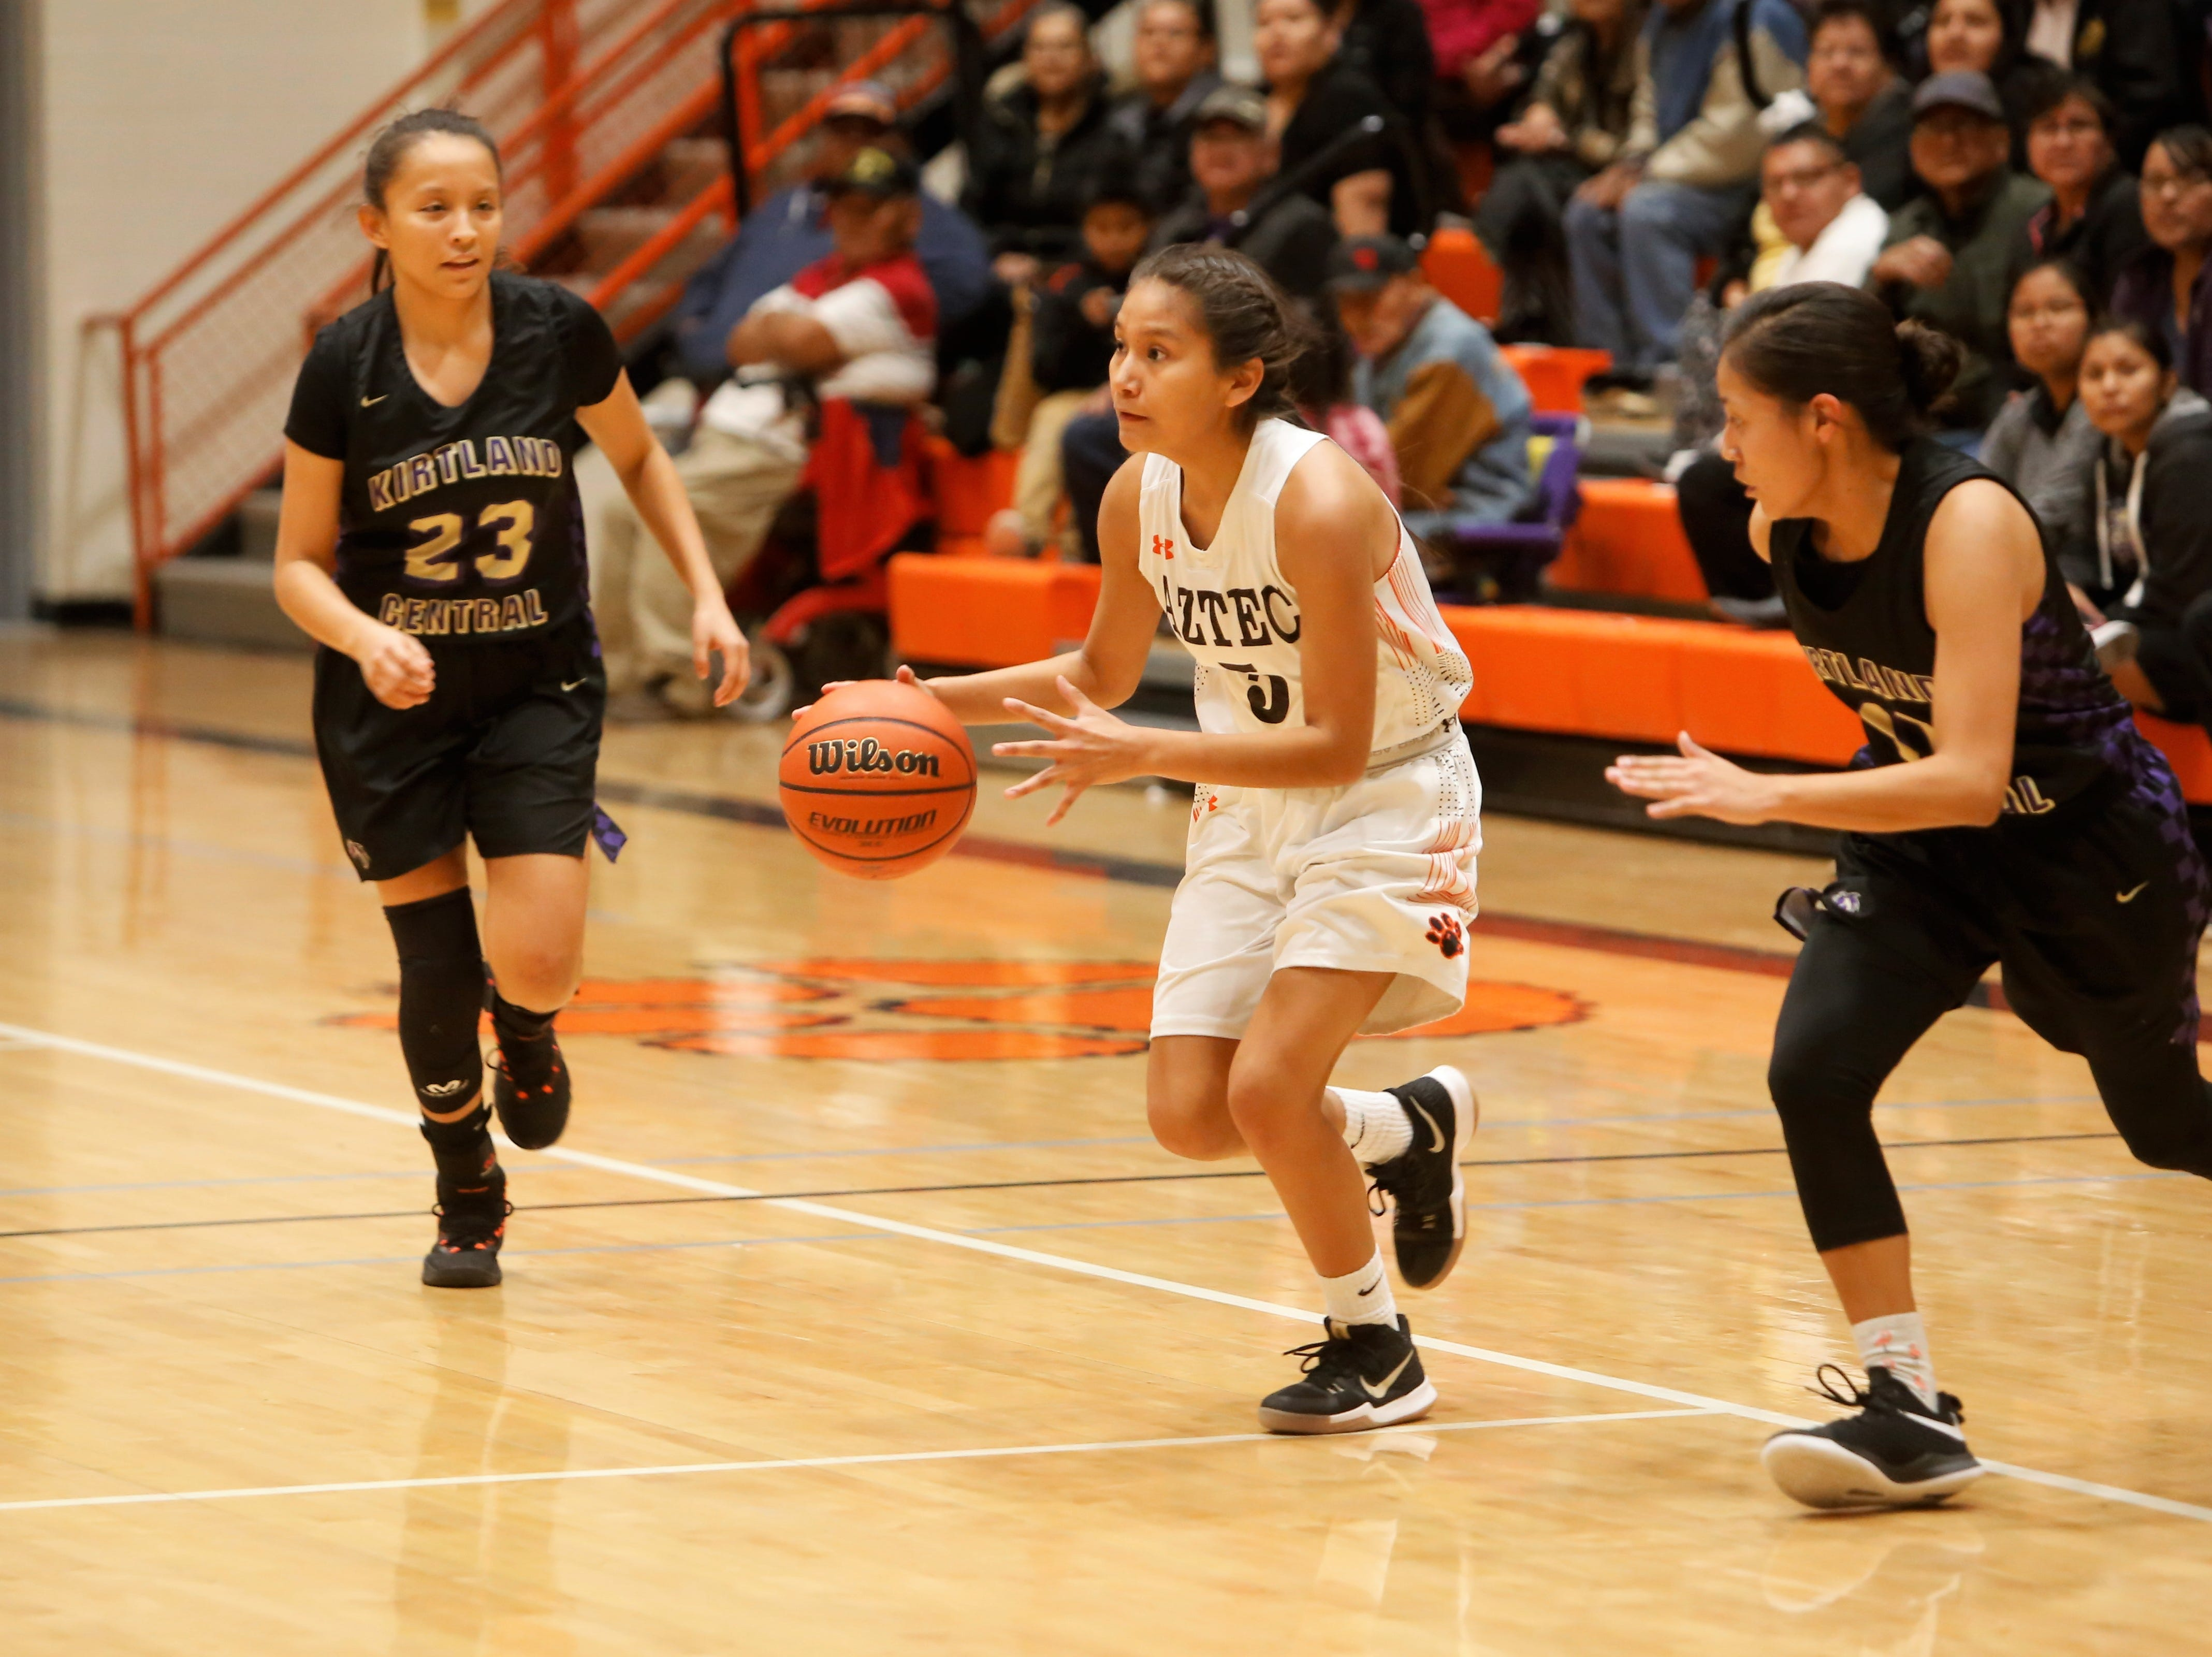 Aztec's DaShauntee Gonzales looks to pass the ball down the right side against Kirtland Central's Avery Begay (23) and Melanie Yazzie (11) during Friday's District 1-4A game at Lillywhite Gym in Aztec.